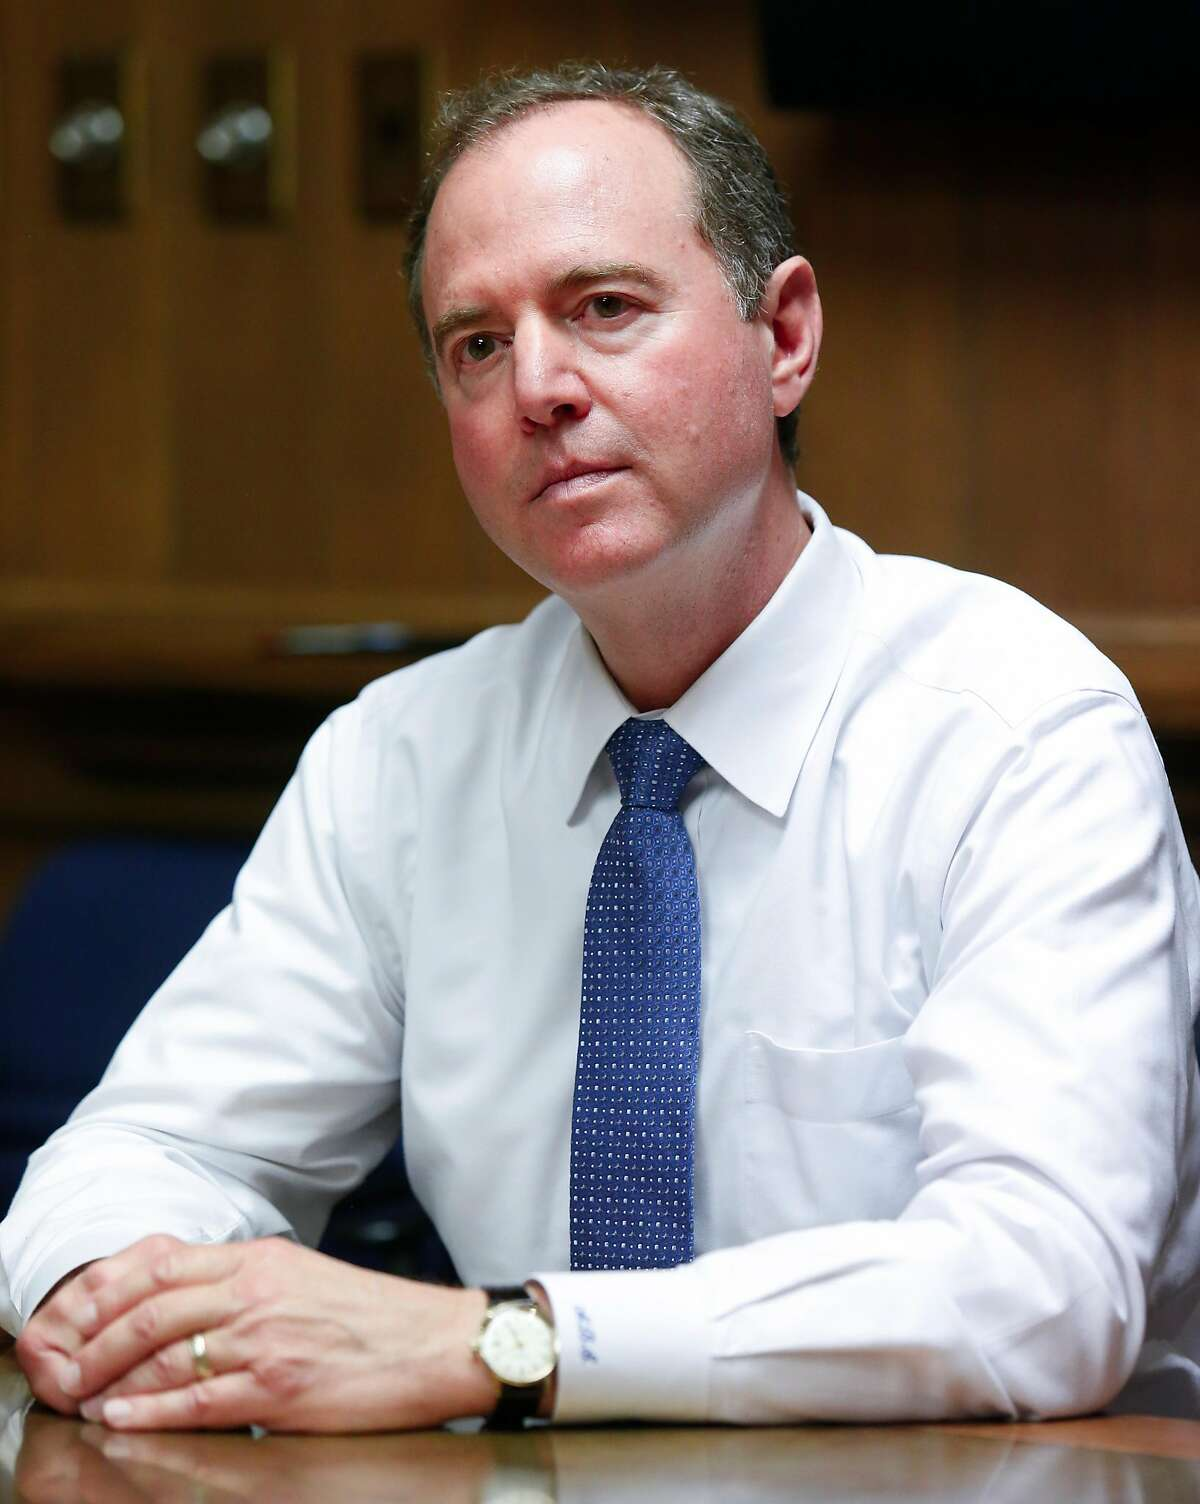 Rep. Adam Schiff, D-Burbank, will present the keynote speech at the UC Hastings College of the Law 2018 Commencement Ceremony on Saturday, May 12, 2018 in the Bill Graham Civic Auditorium in San Francisco. Schiff has served in Congress since 2001, and is the ranking Democrat on the House Intelligence Committee.